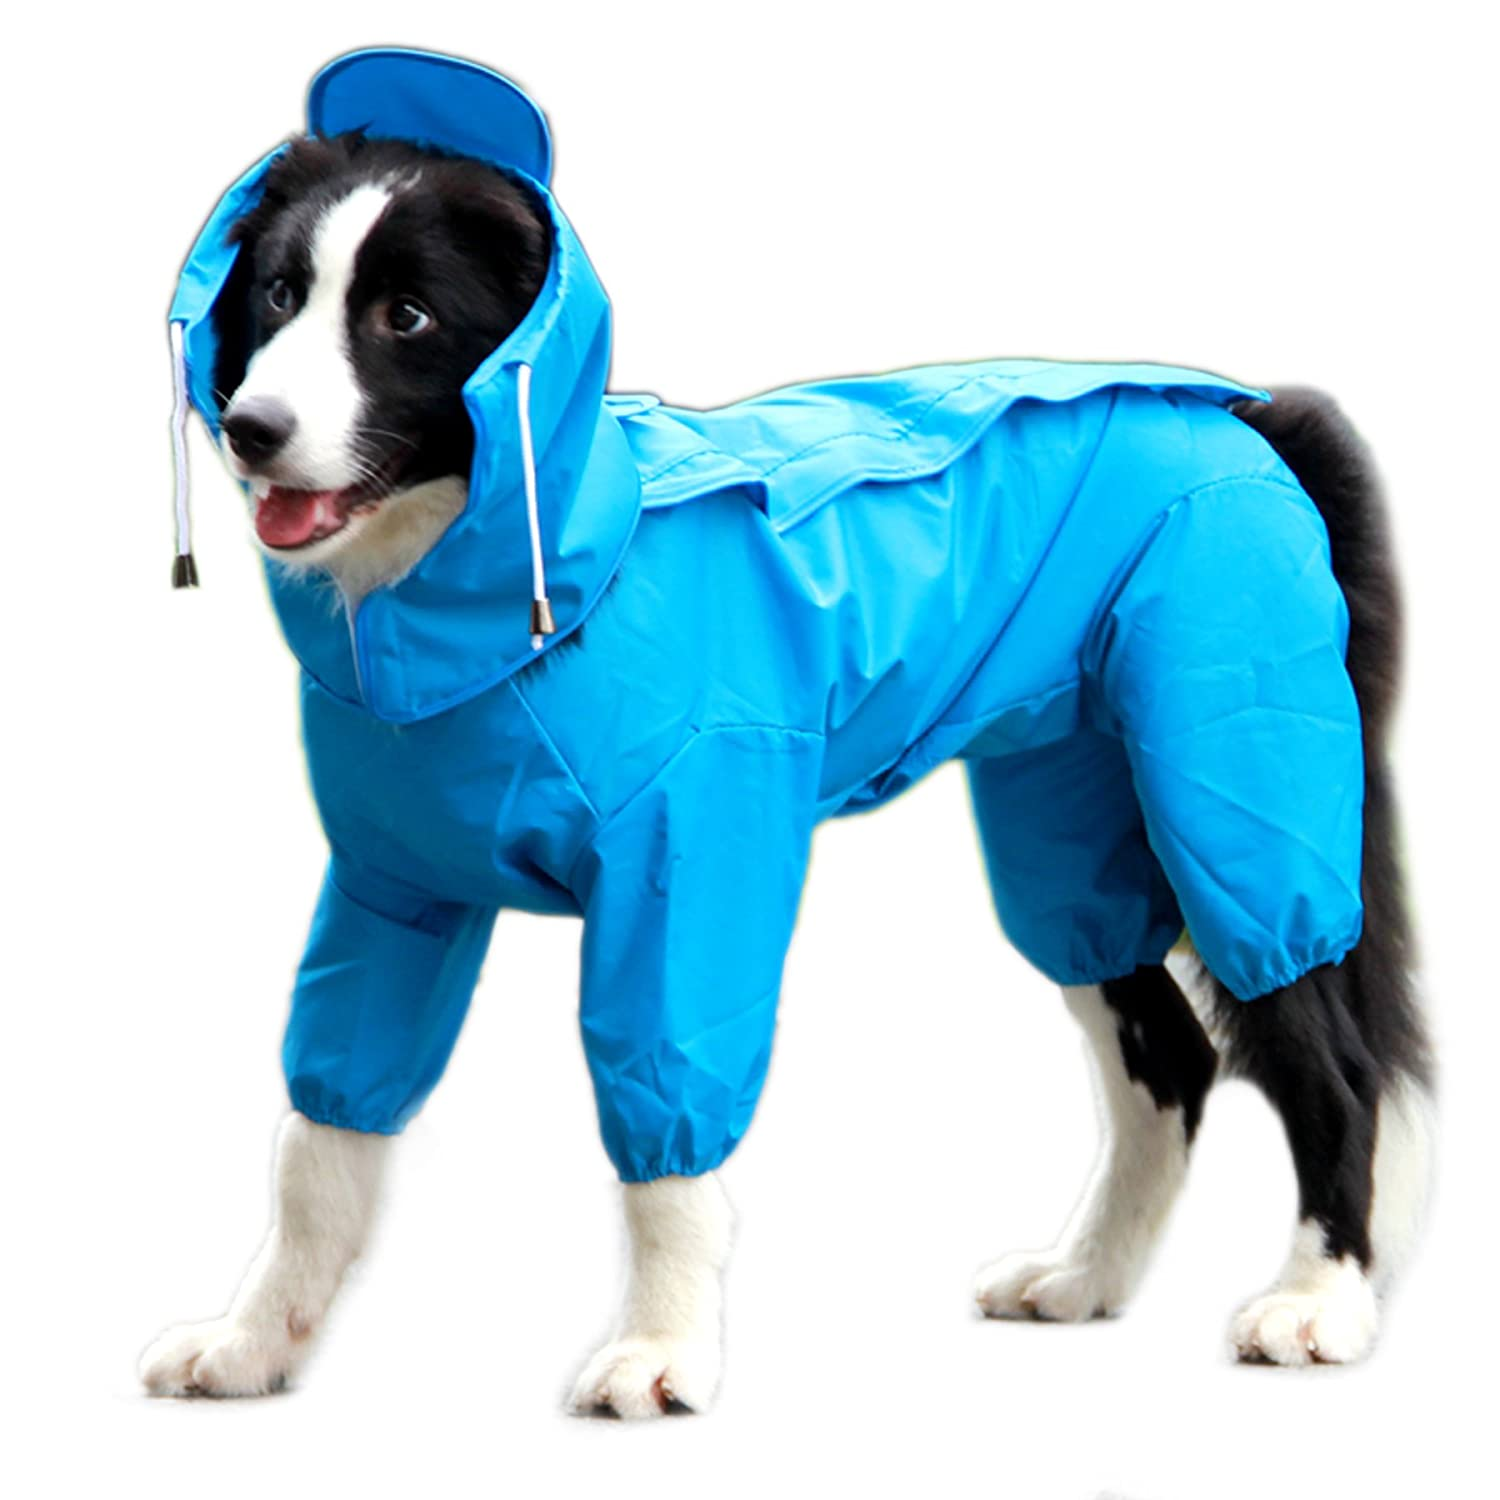 bluee XL bluee XL Alfie Pet Bella Rainy Days Waterproof Raincoat (for Dogs and Cats) color  bluee, Size  XL